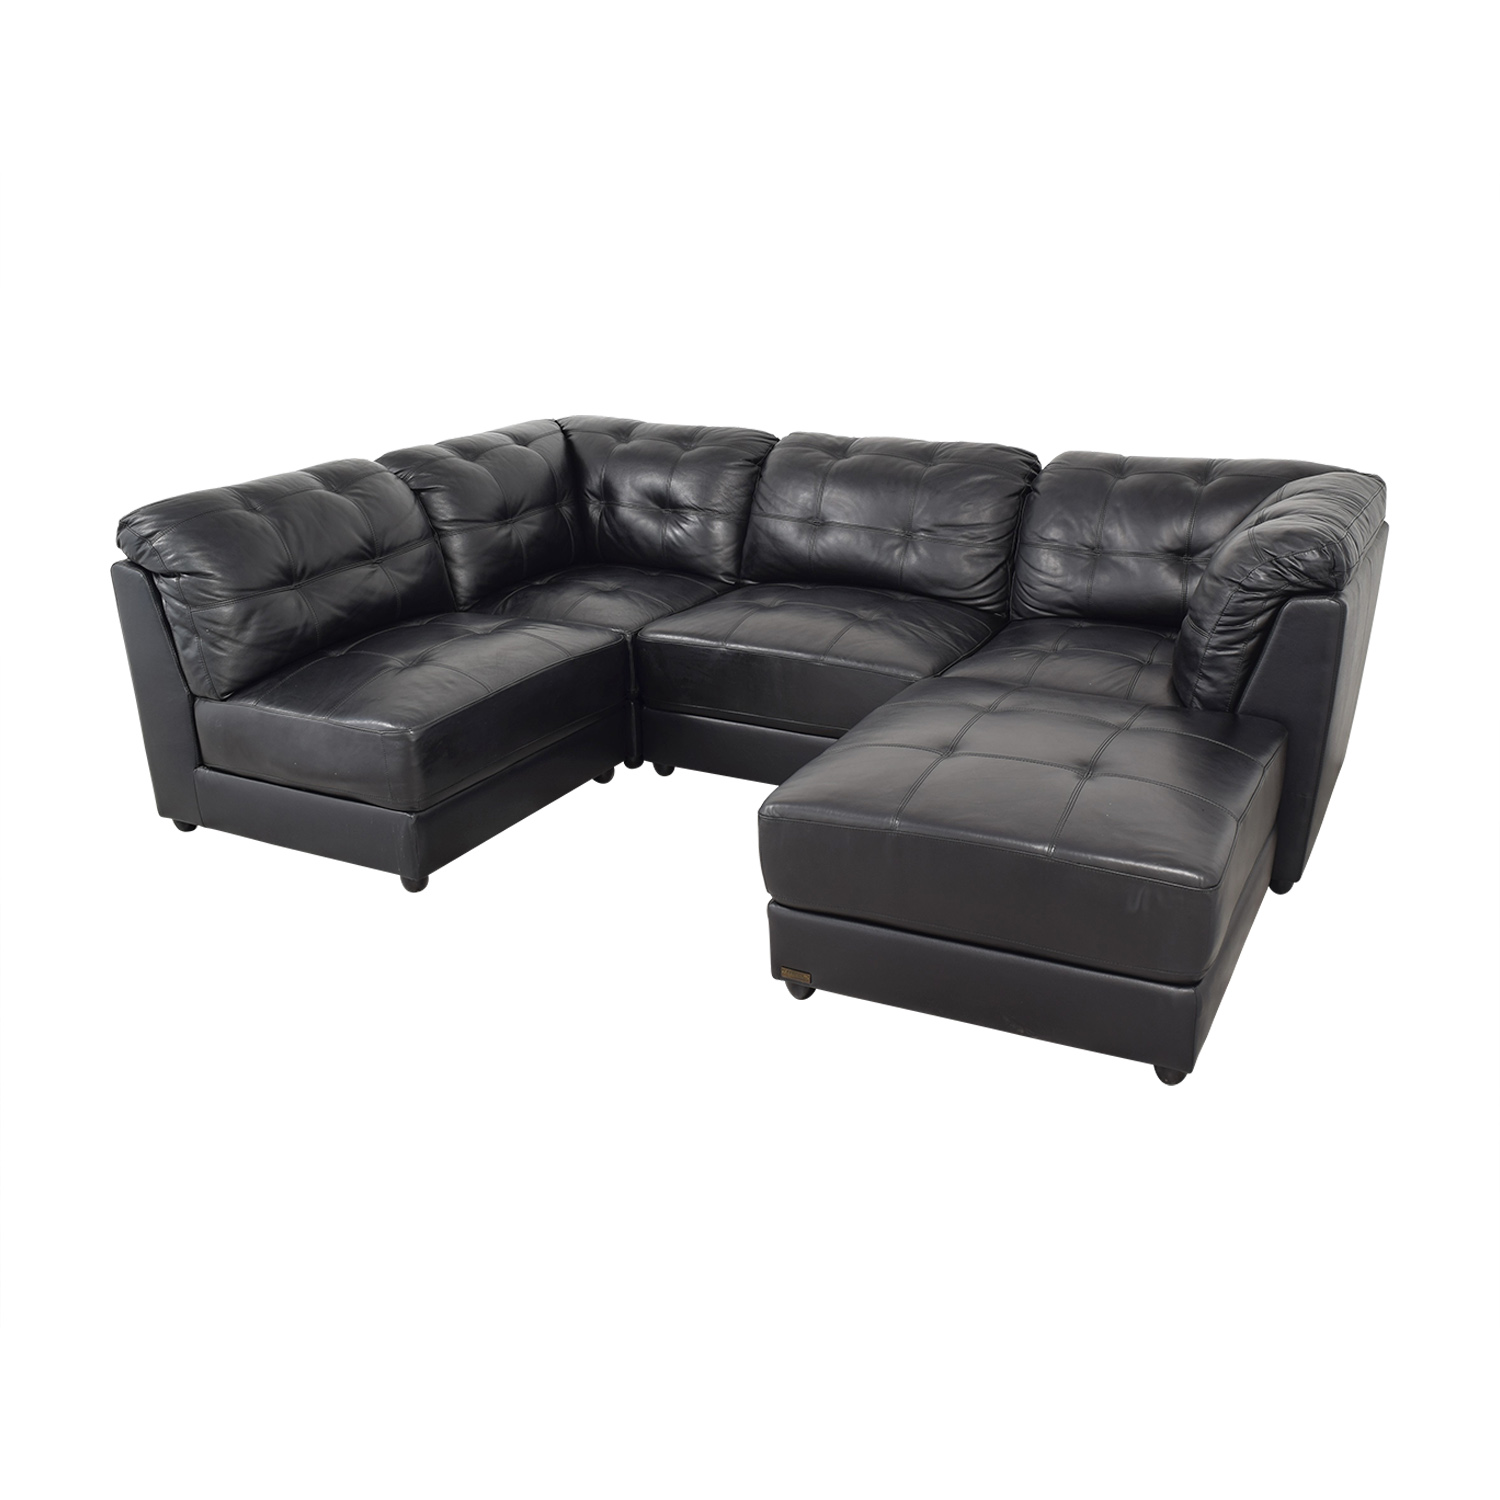 Abbyson Abbyson Ella 5-Piece Black Modular Leather Sectional with Ottoman ct